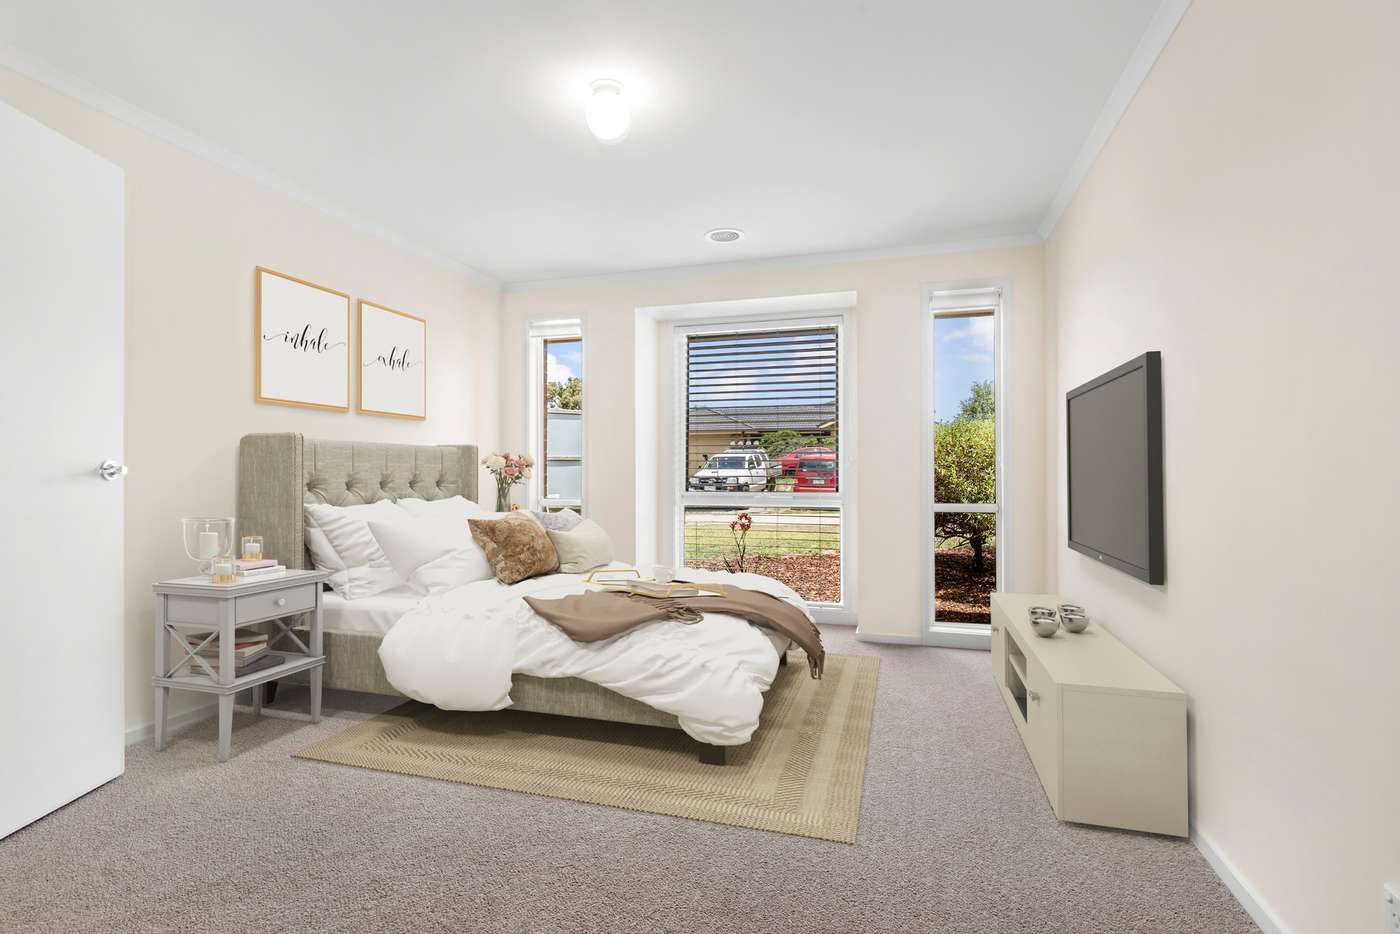 Fifth view of Homely house listing, 9 Sunset Rise, Hastings VIC 3915